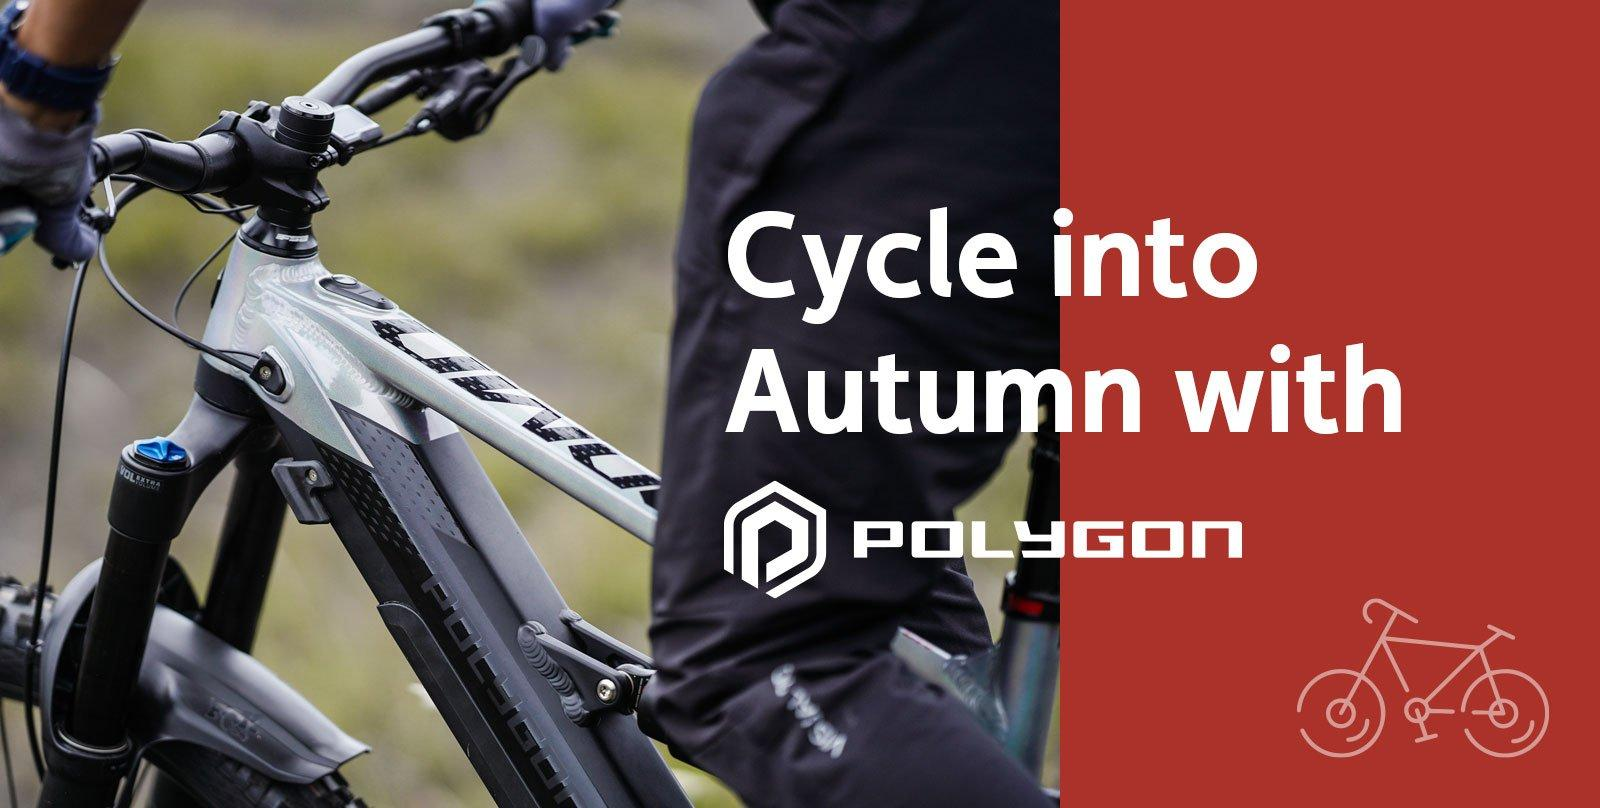 Cycle in to Autumn with Polygon